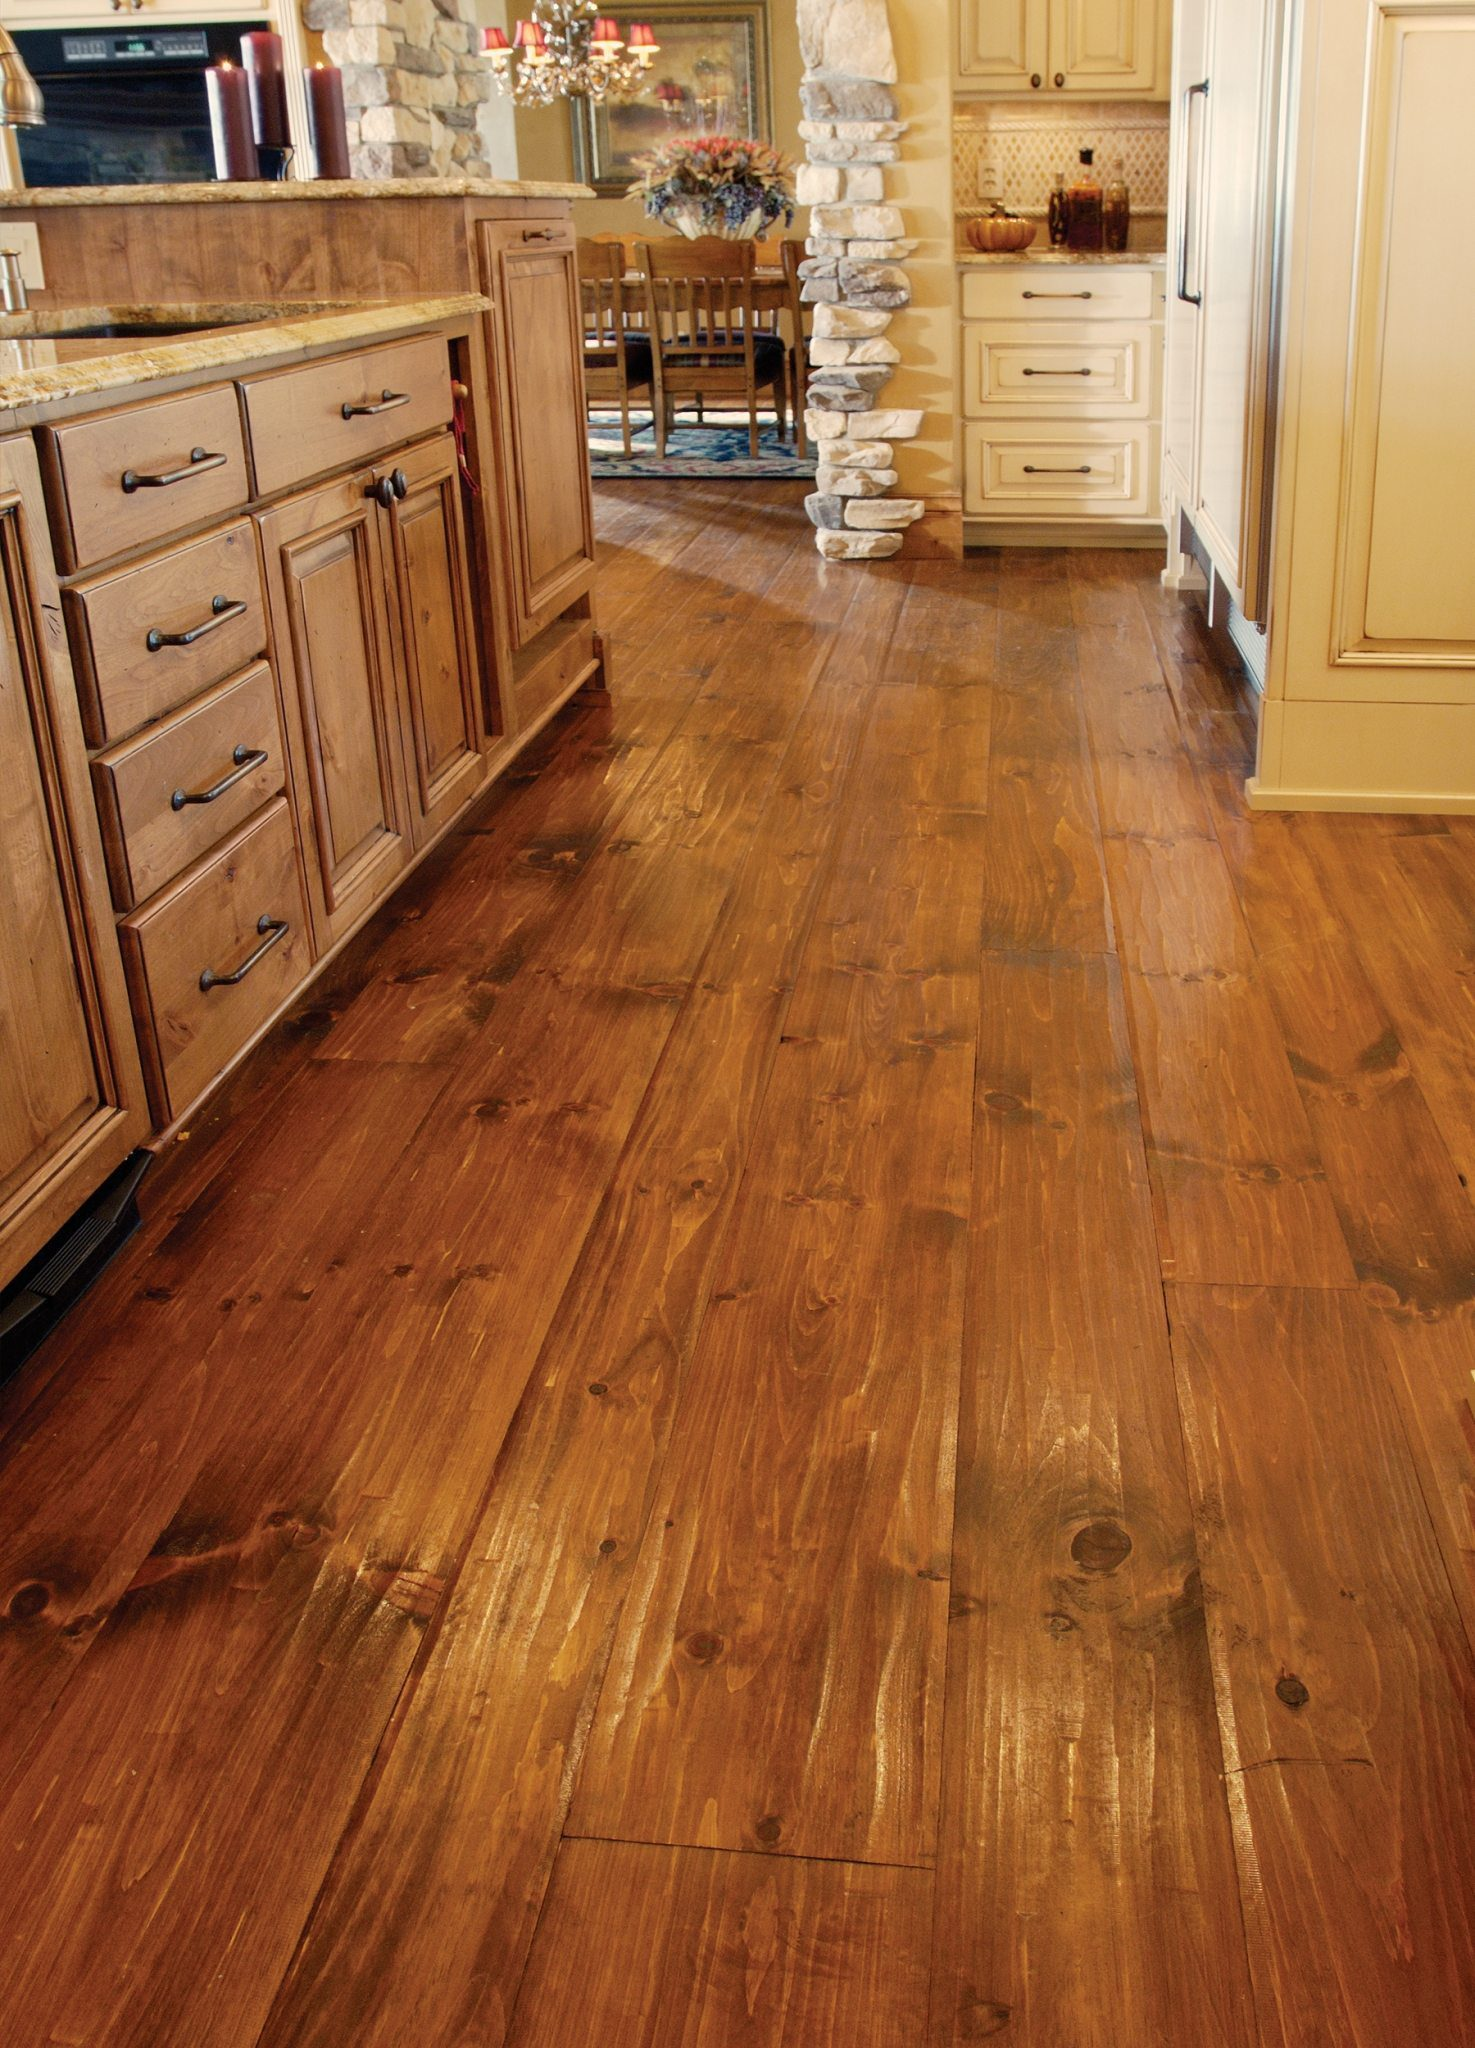 flooring kitchen movable cabinets eastern white pine in a